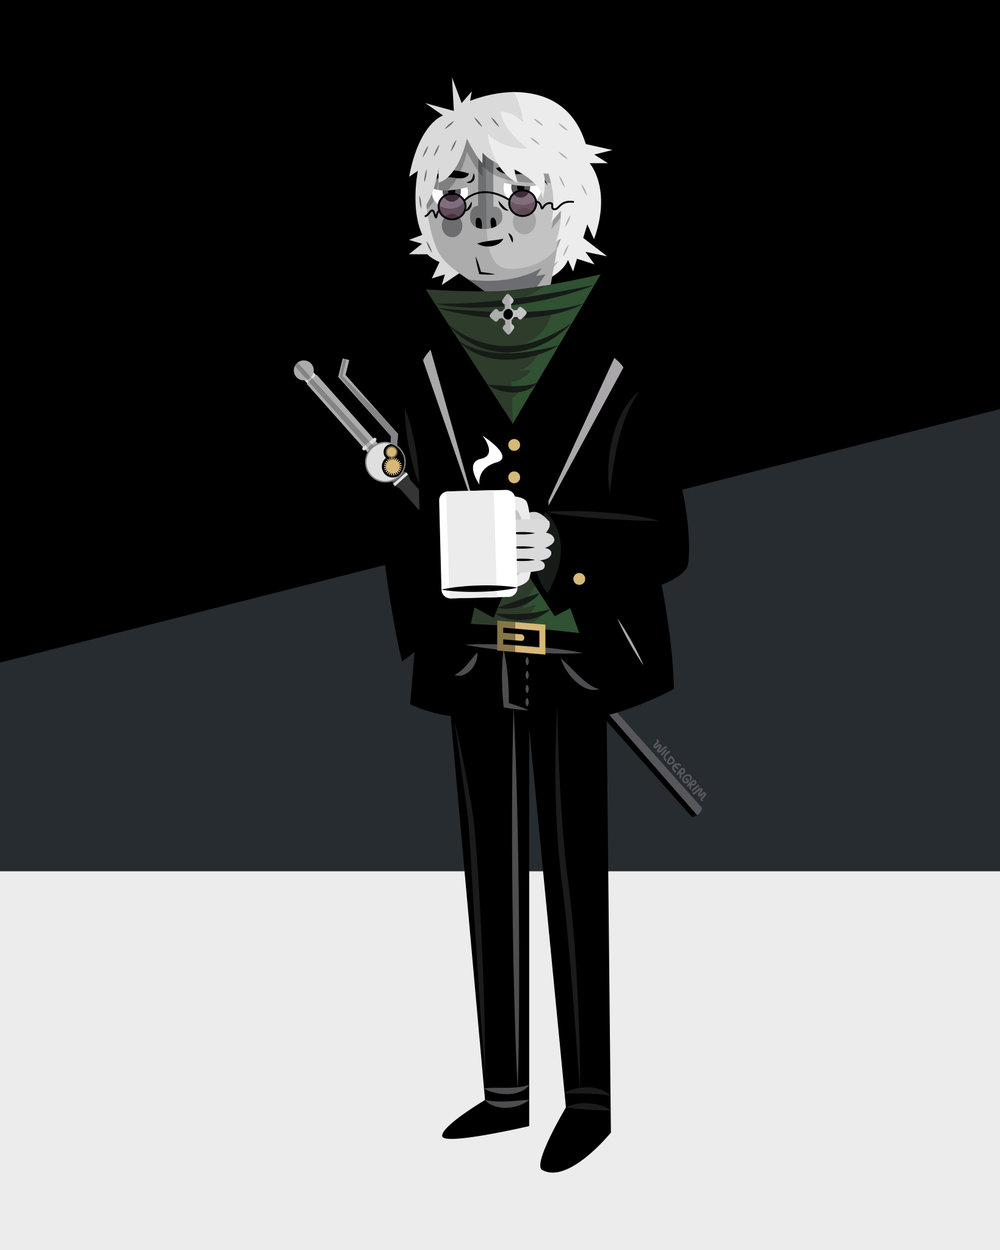 Professor Ozpin from the Rooster Teeth series RWBY